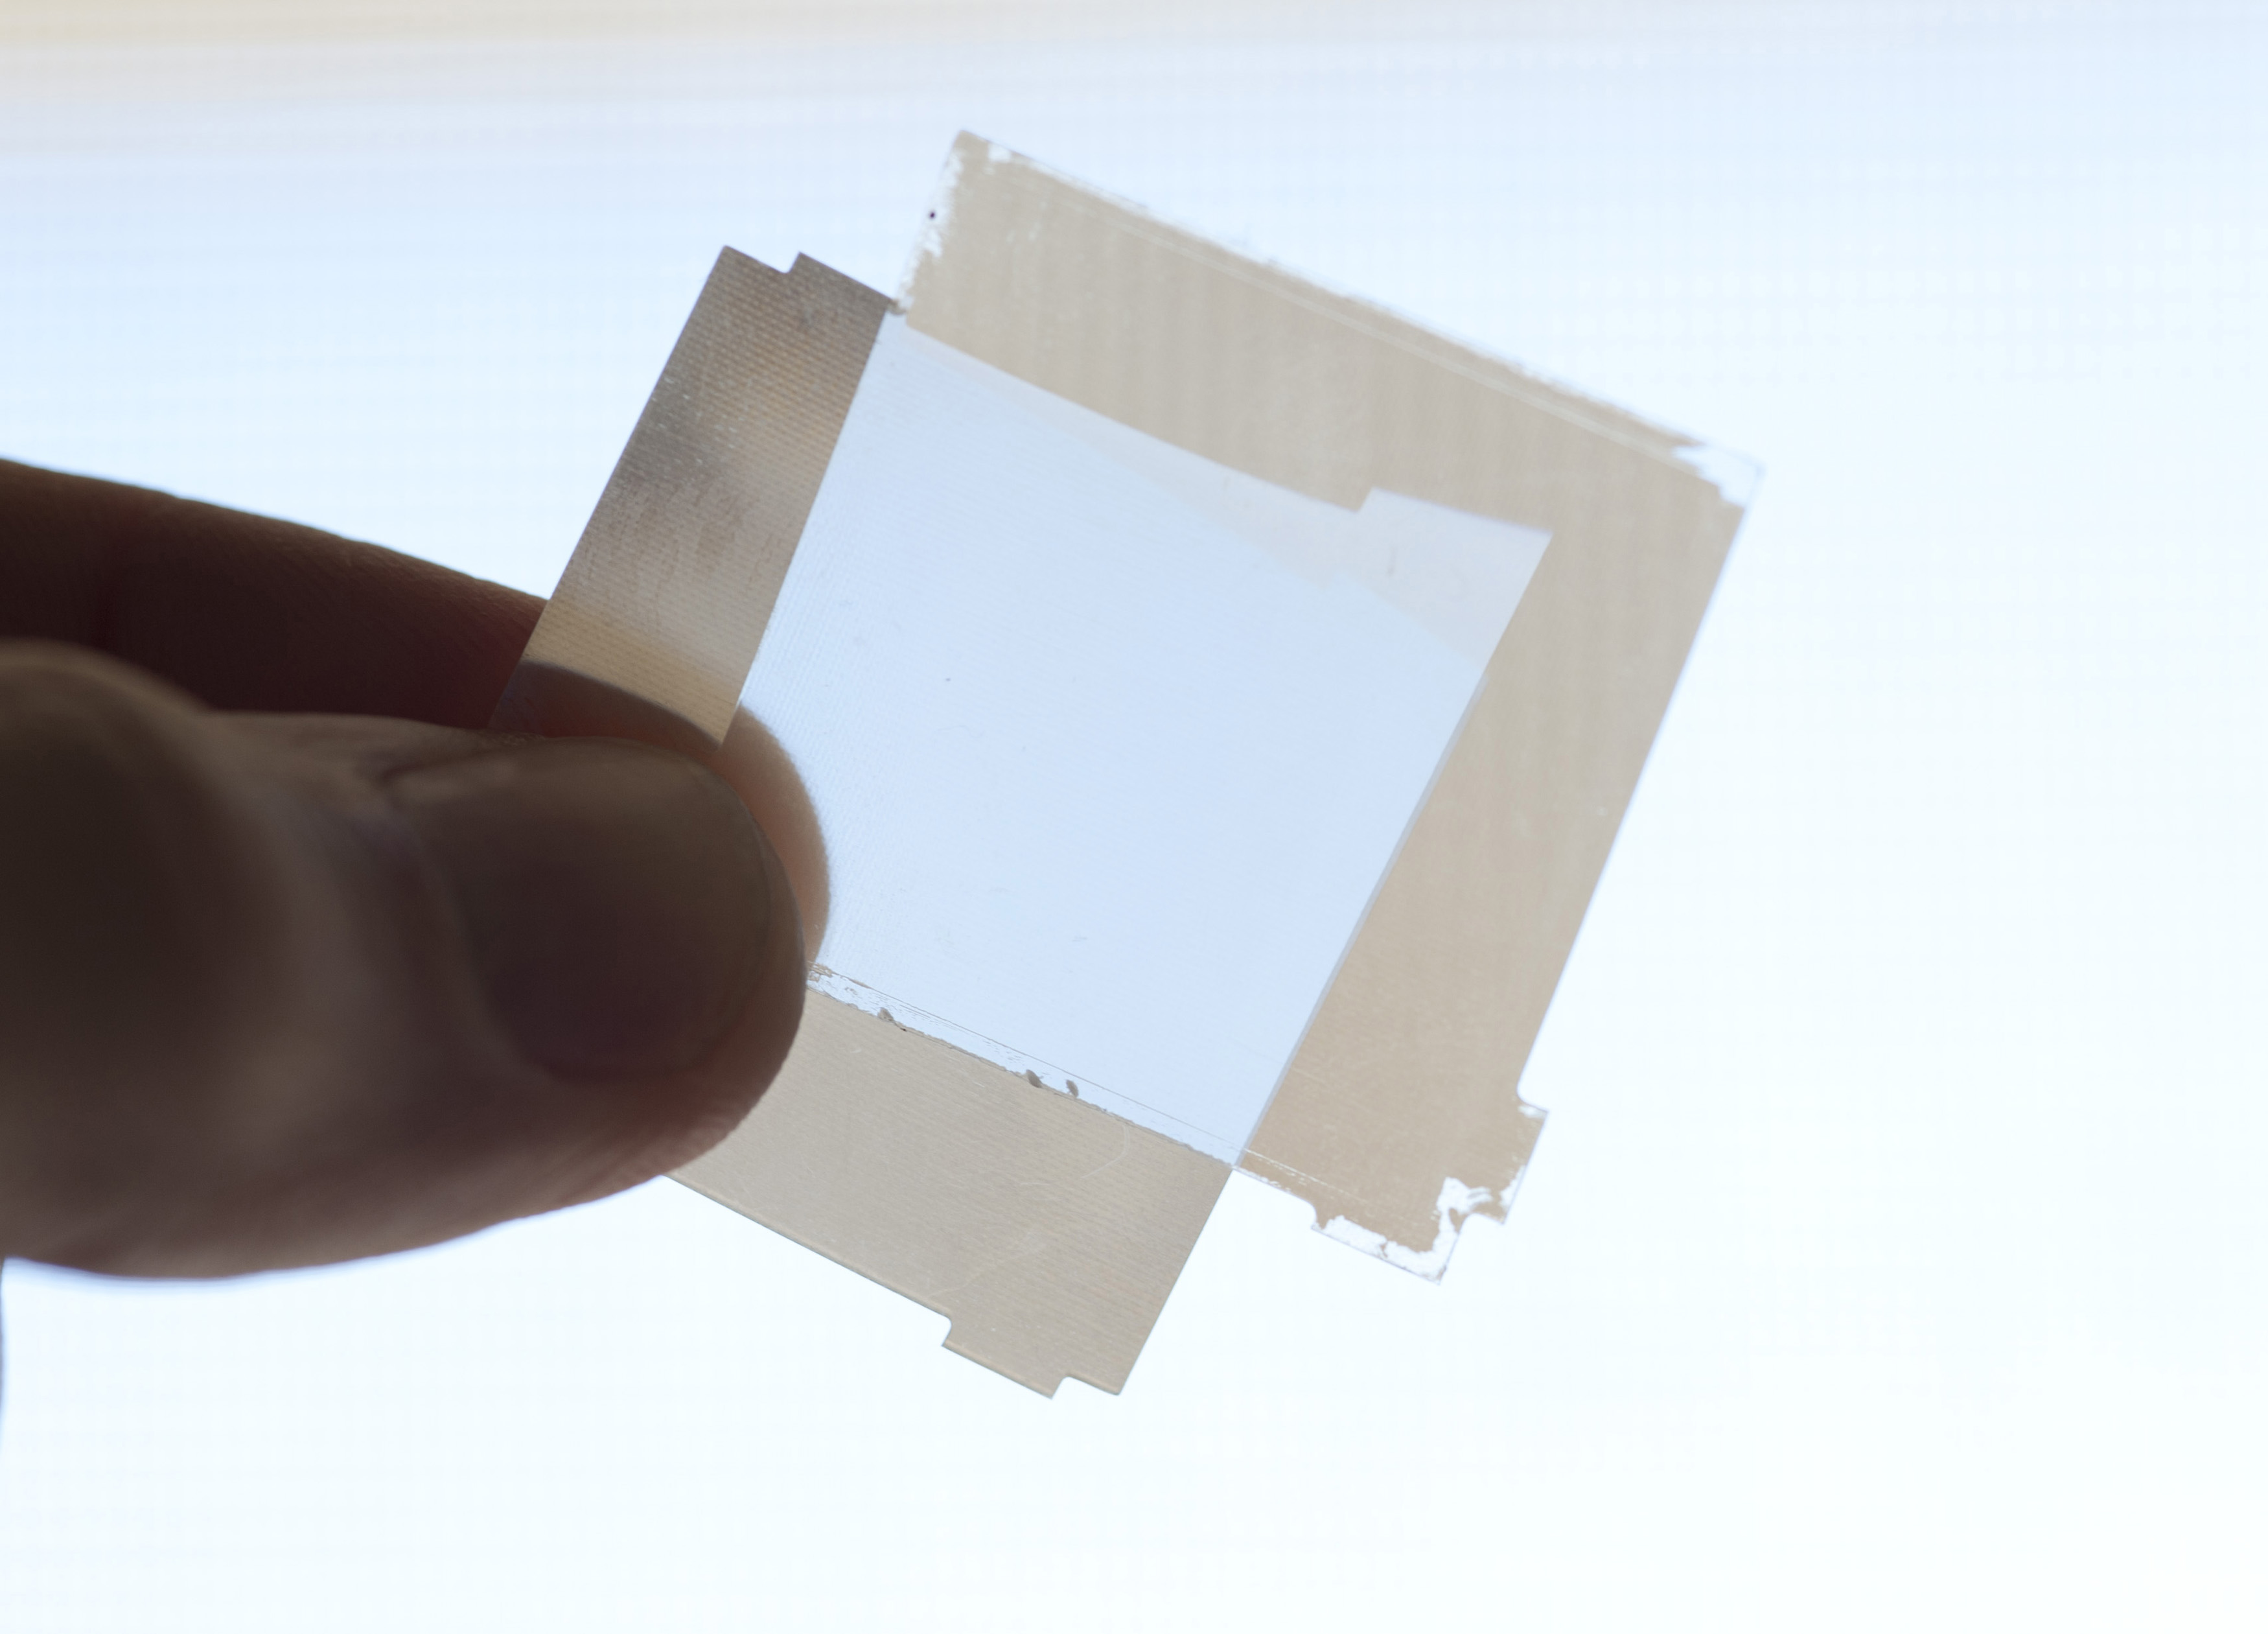 sheets of polarizing material block and admit light from different angles when overlapped